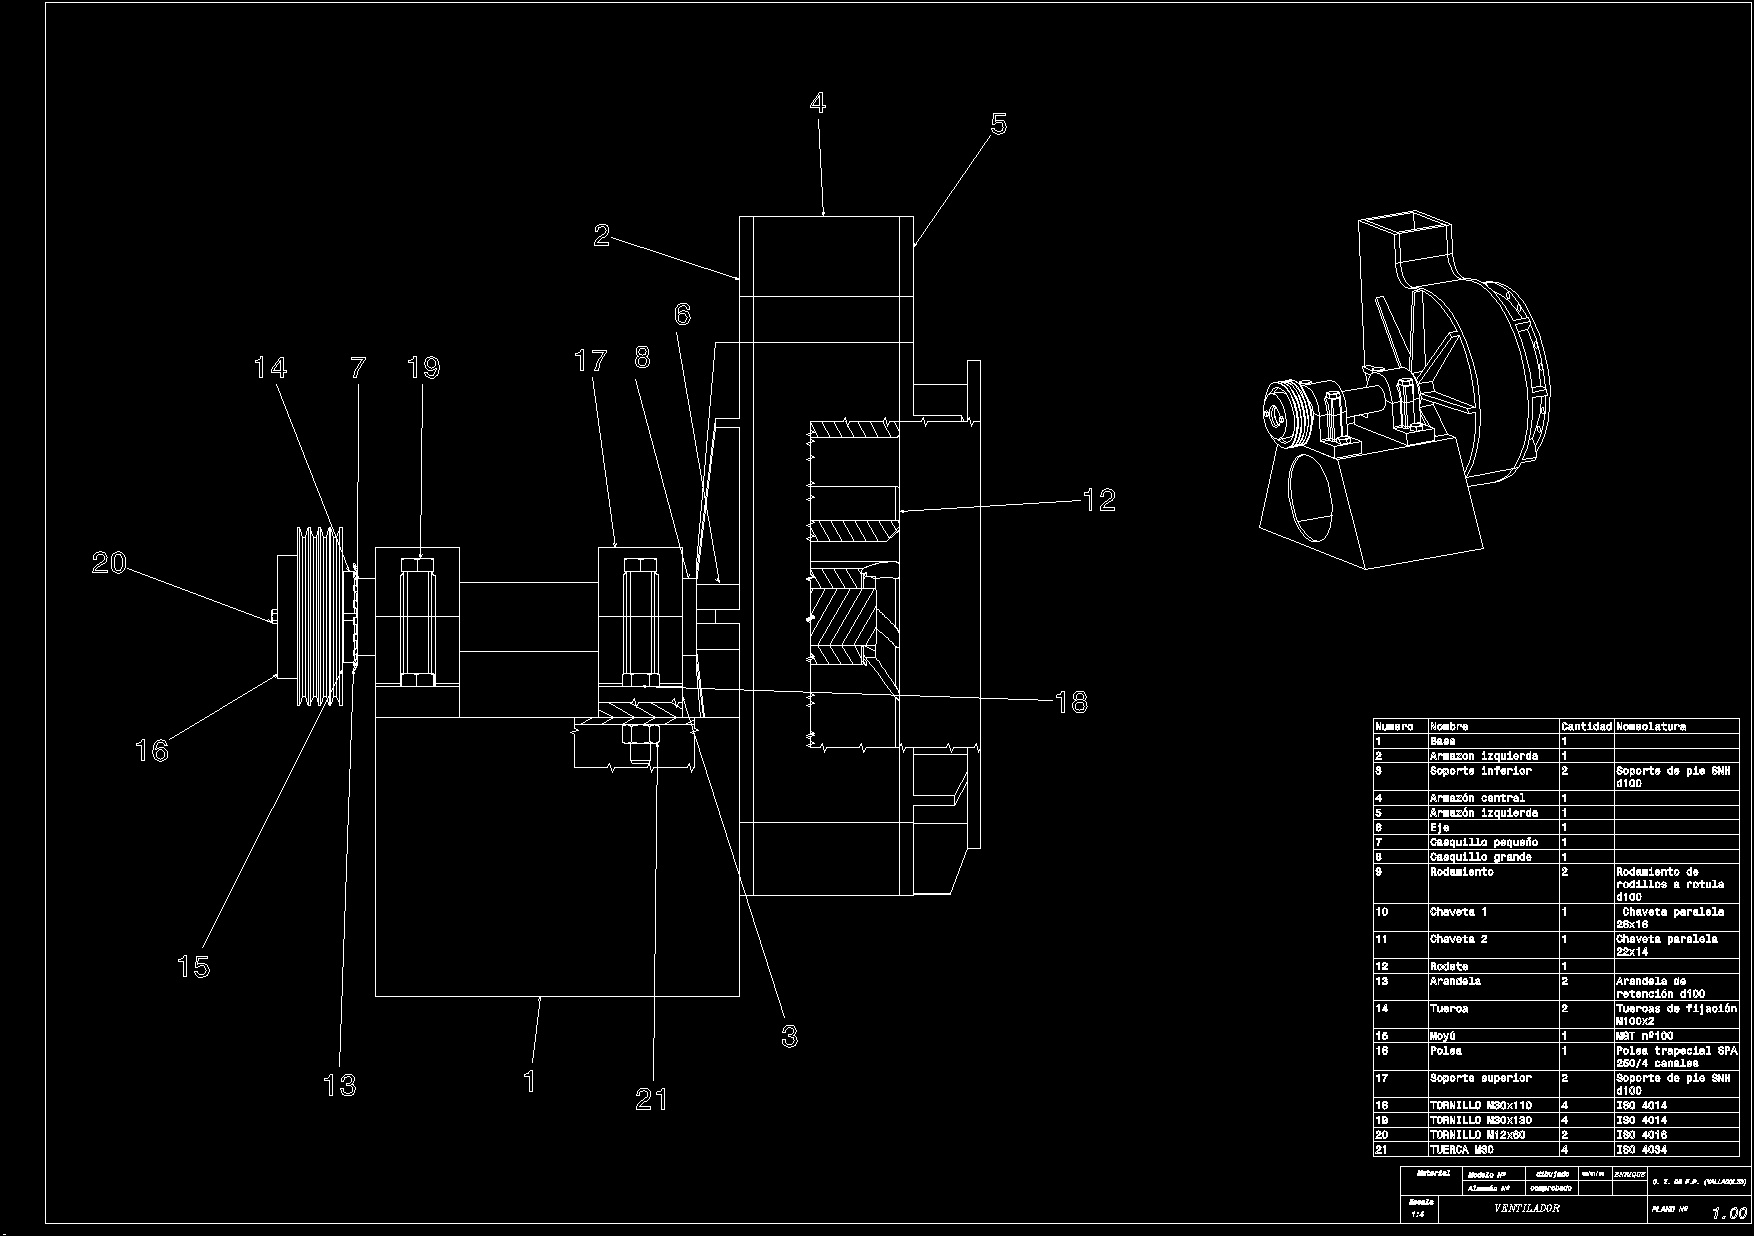 Fan Blower Medium Pressure Dwg Section For Autocad